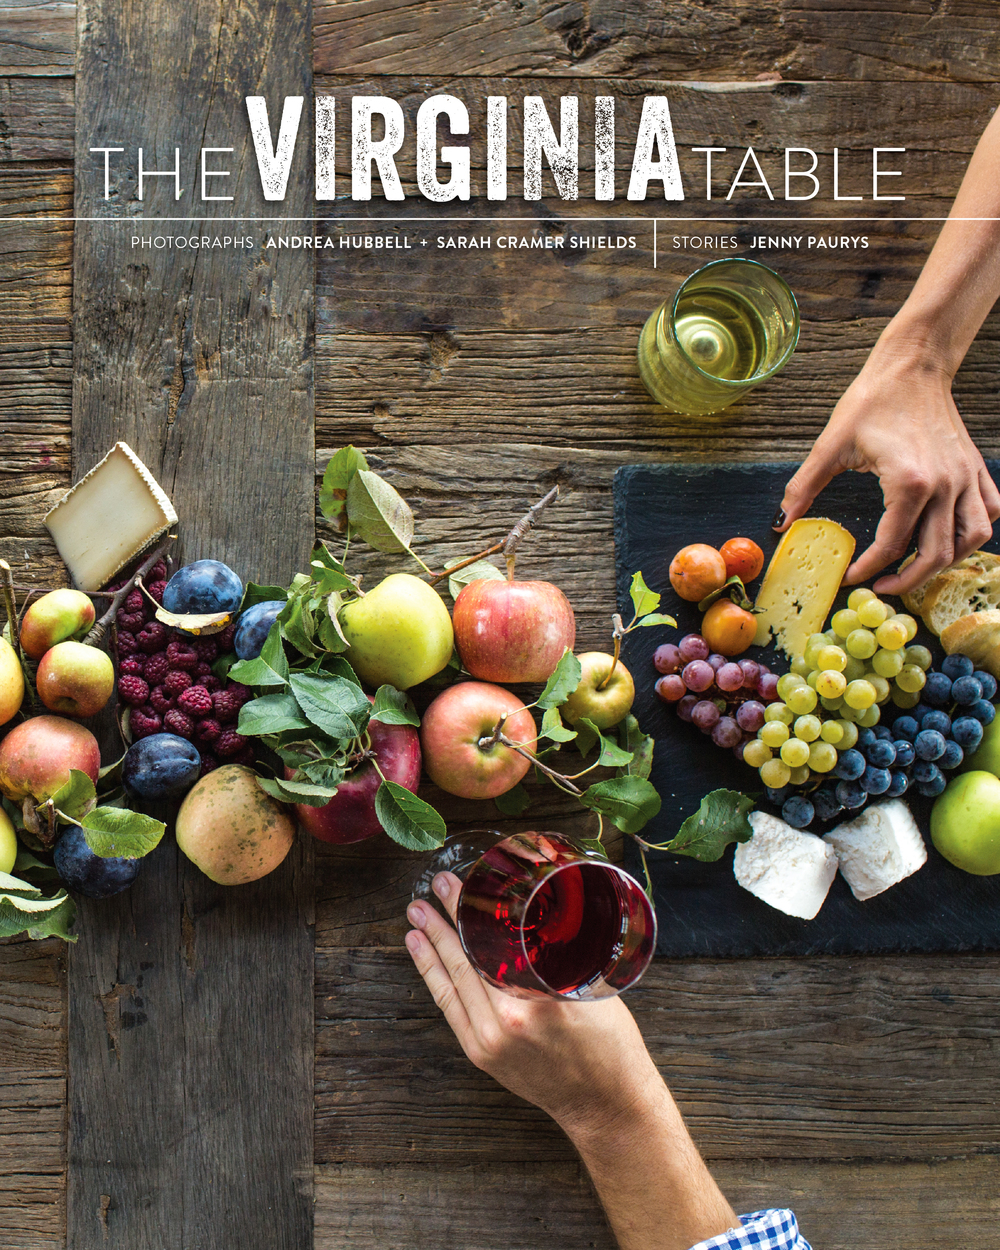 Photo Credits : The Virginia Table: Our Local Commons